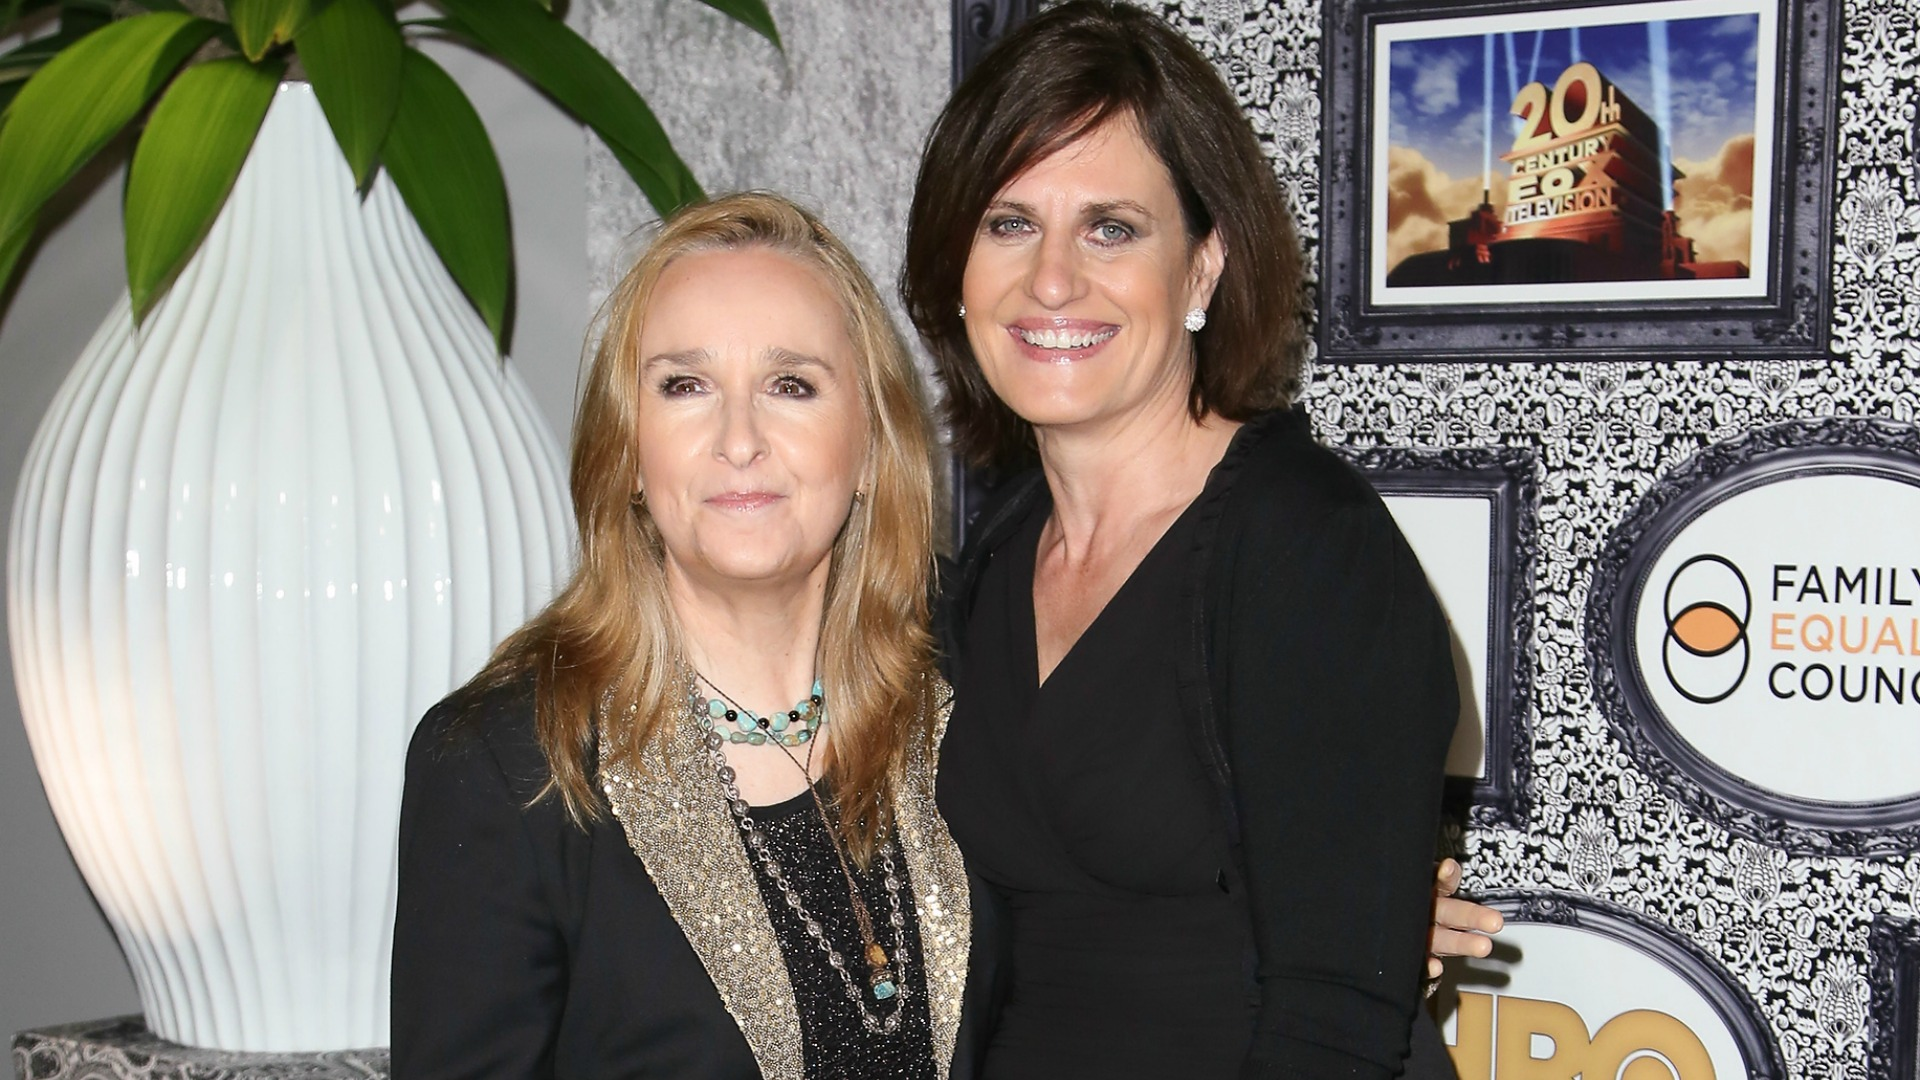 Melissa Etheridge and Linda Wallem are married